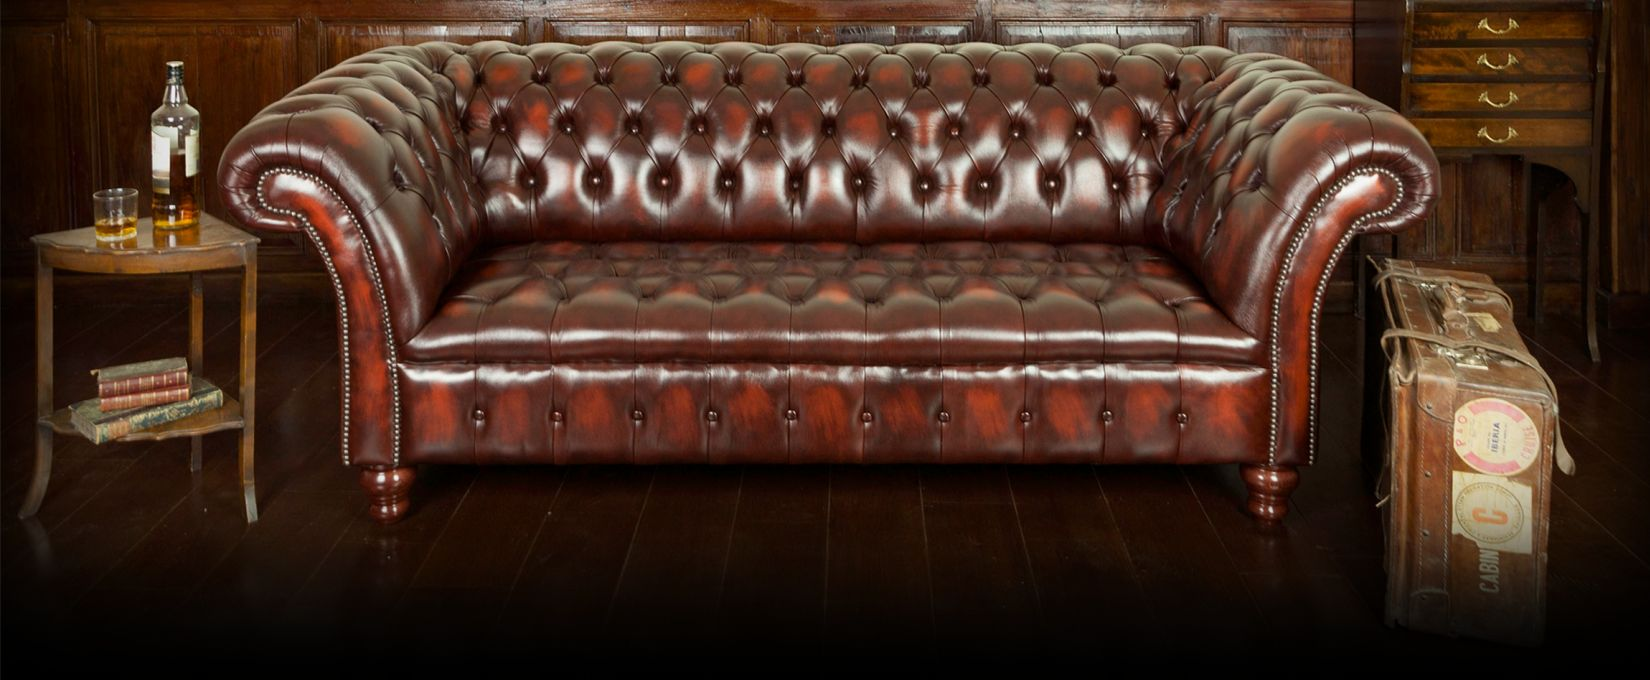 Canape chesterfield prix - Canape type chesterfield ...